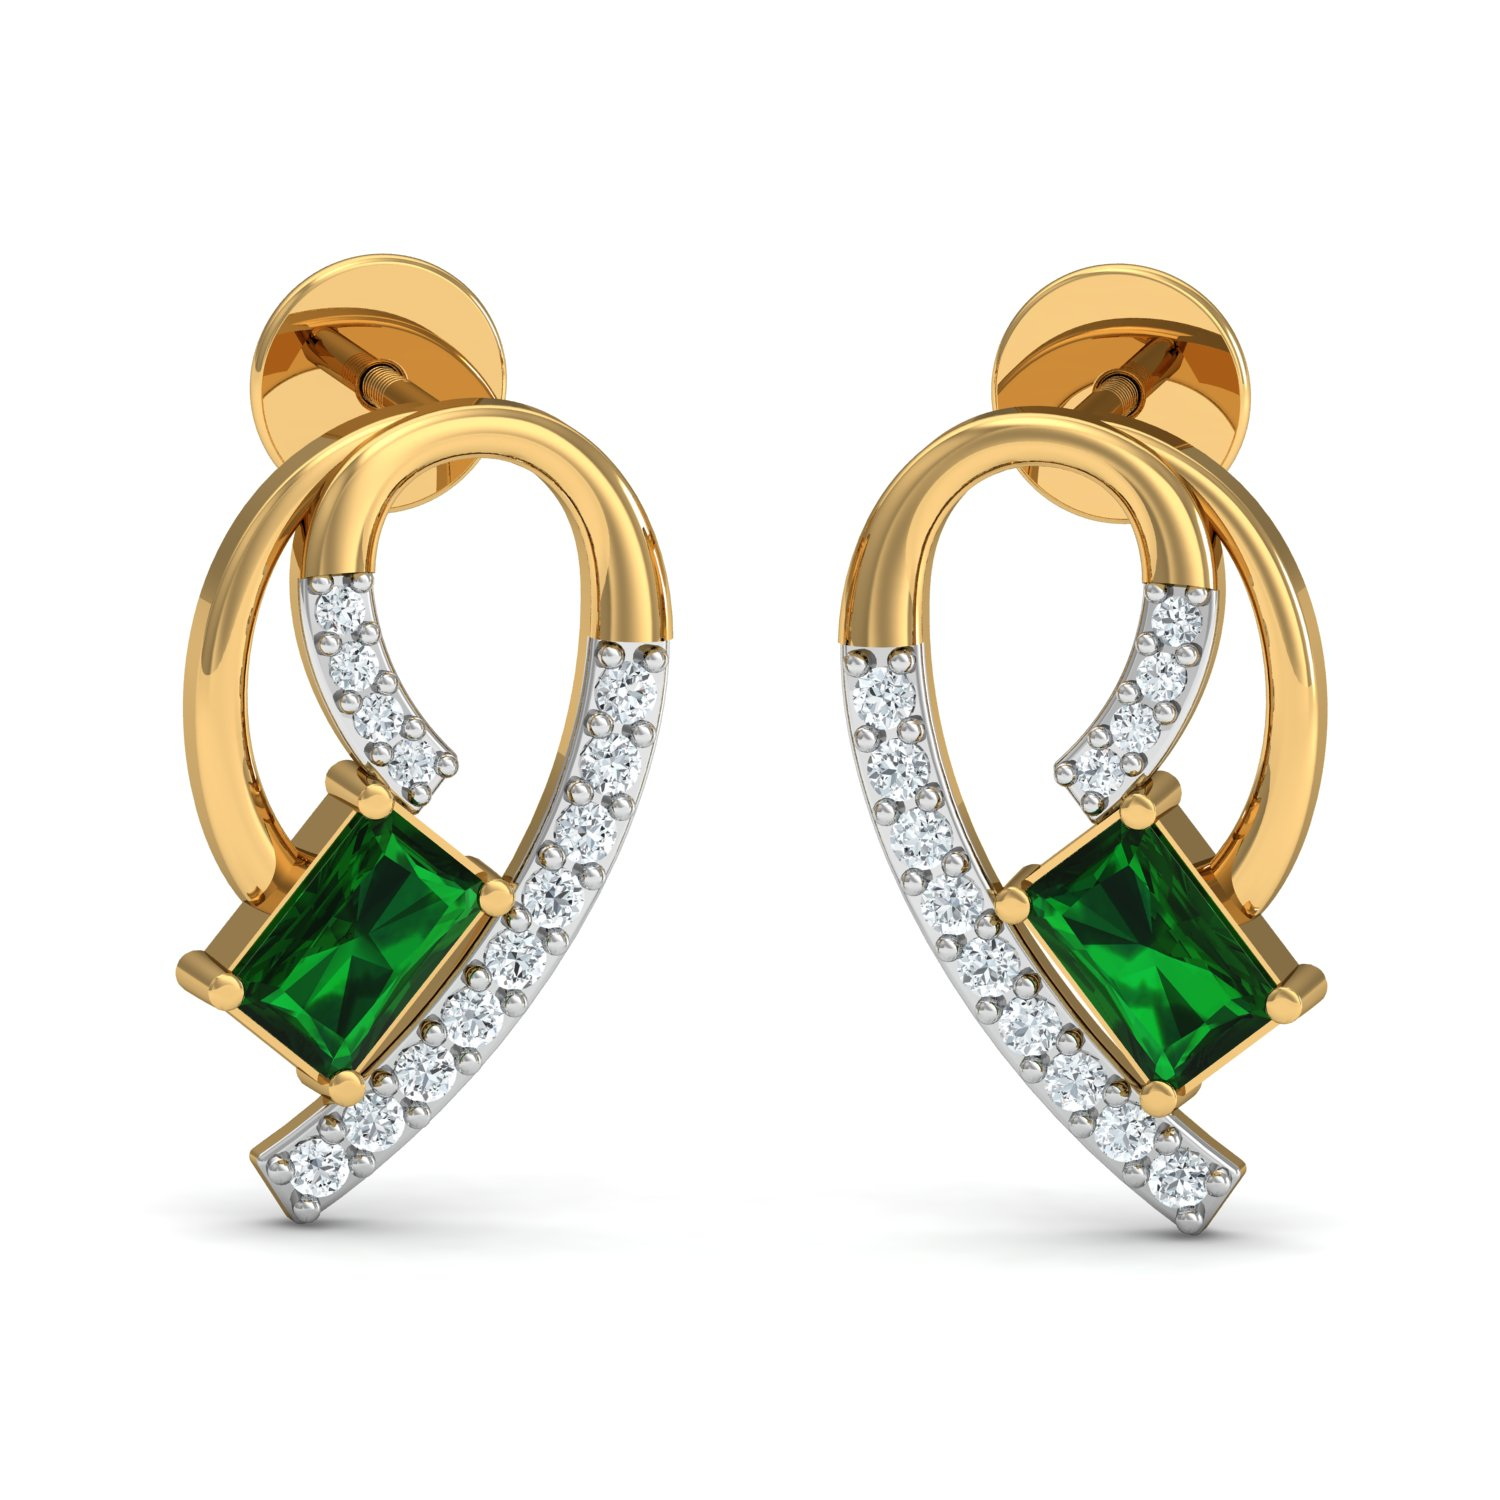 certified emerald unheated carat diamond earrings green natural grs zambia